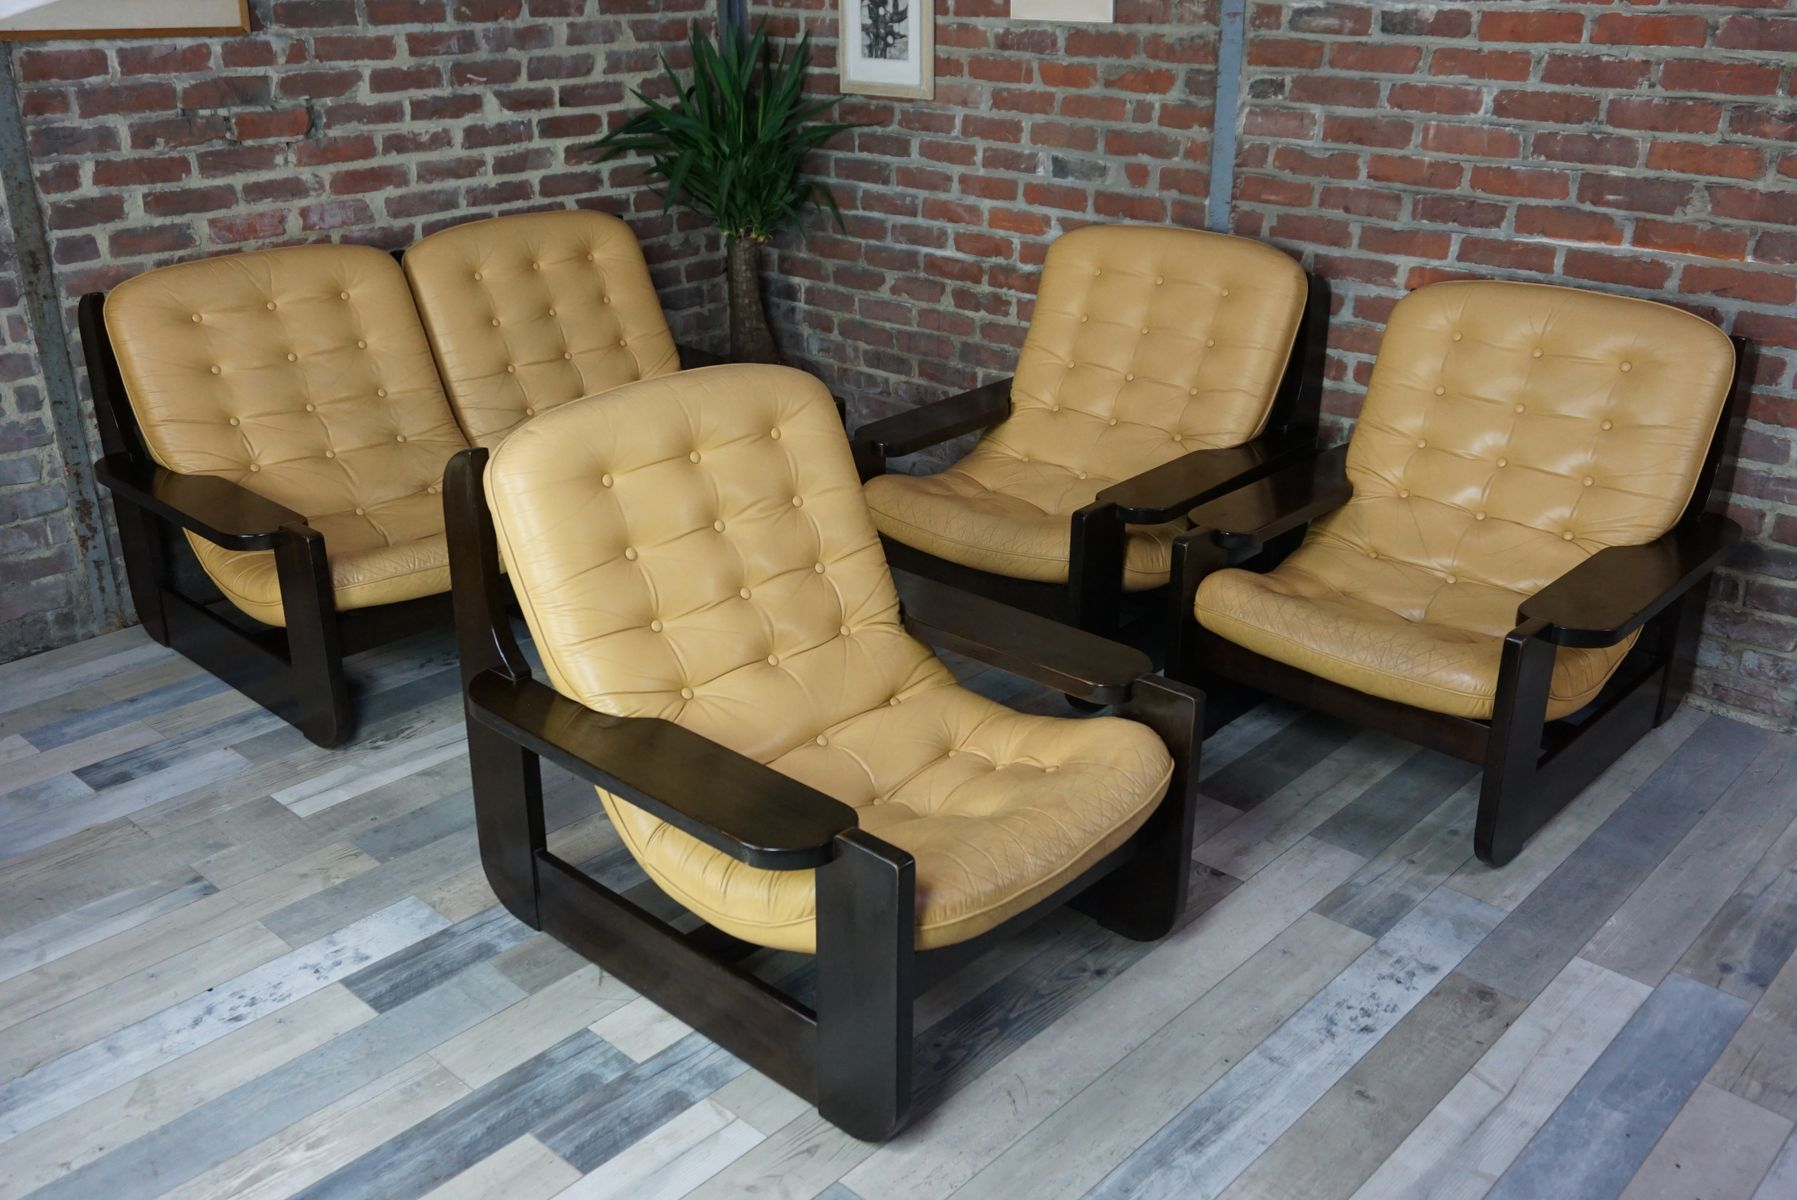 mobilier de salon vintage en bois massif et cuir en vente sur pamono. Black Bedroom Furniture Sets. Home Design Ideas